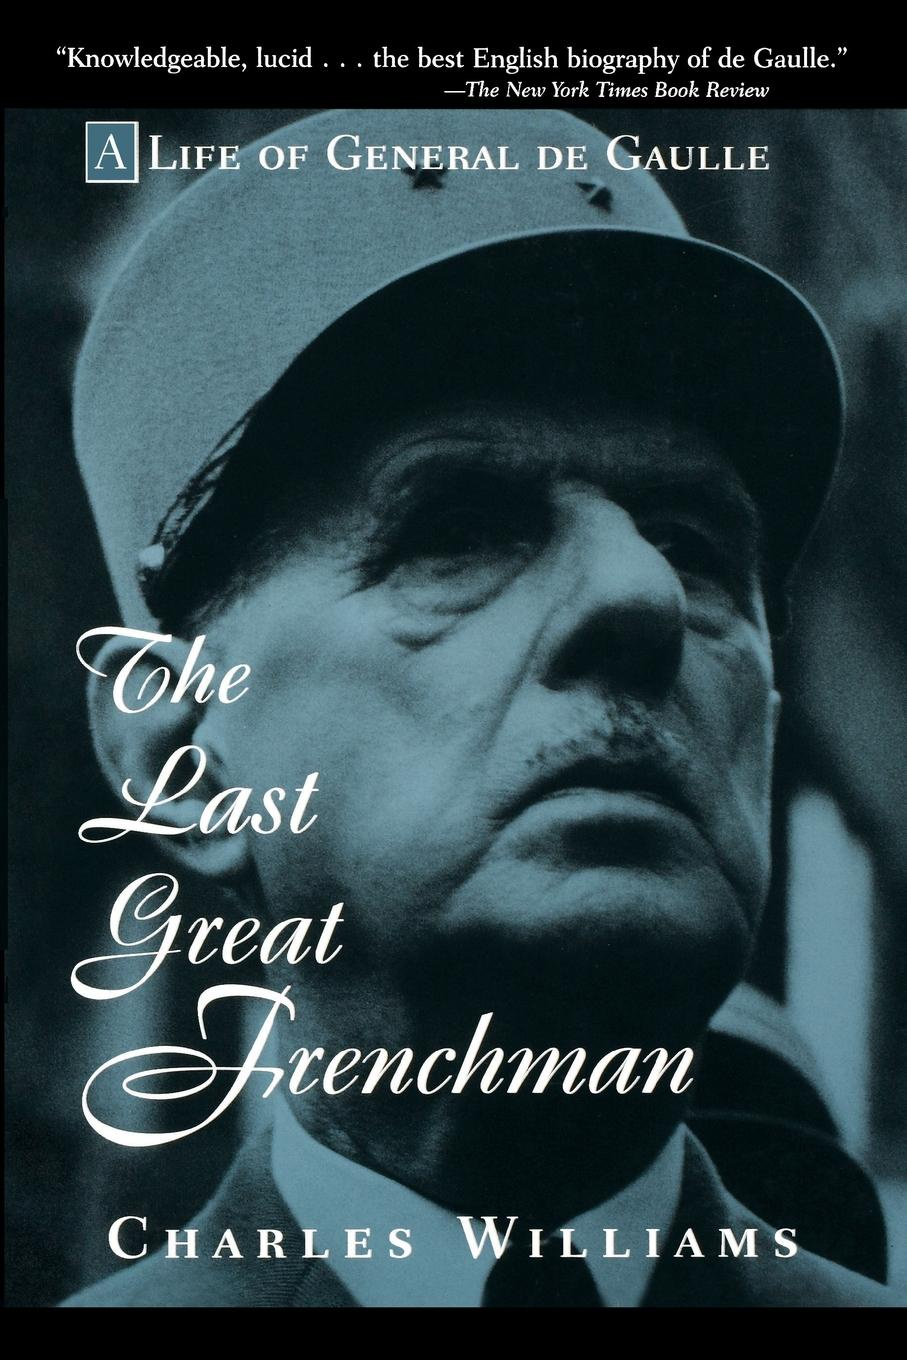 Charles Williams, Angela Williams The Last Great Frenchman. A Life of General de Gaulle t l williams the last caliph